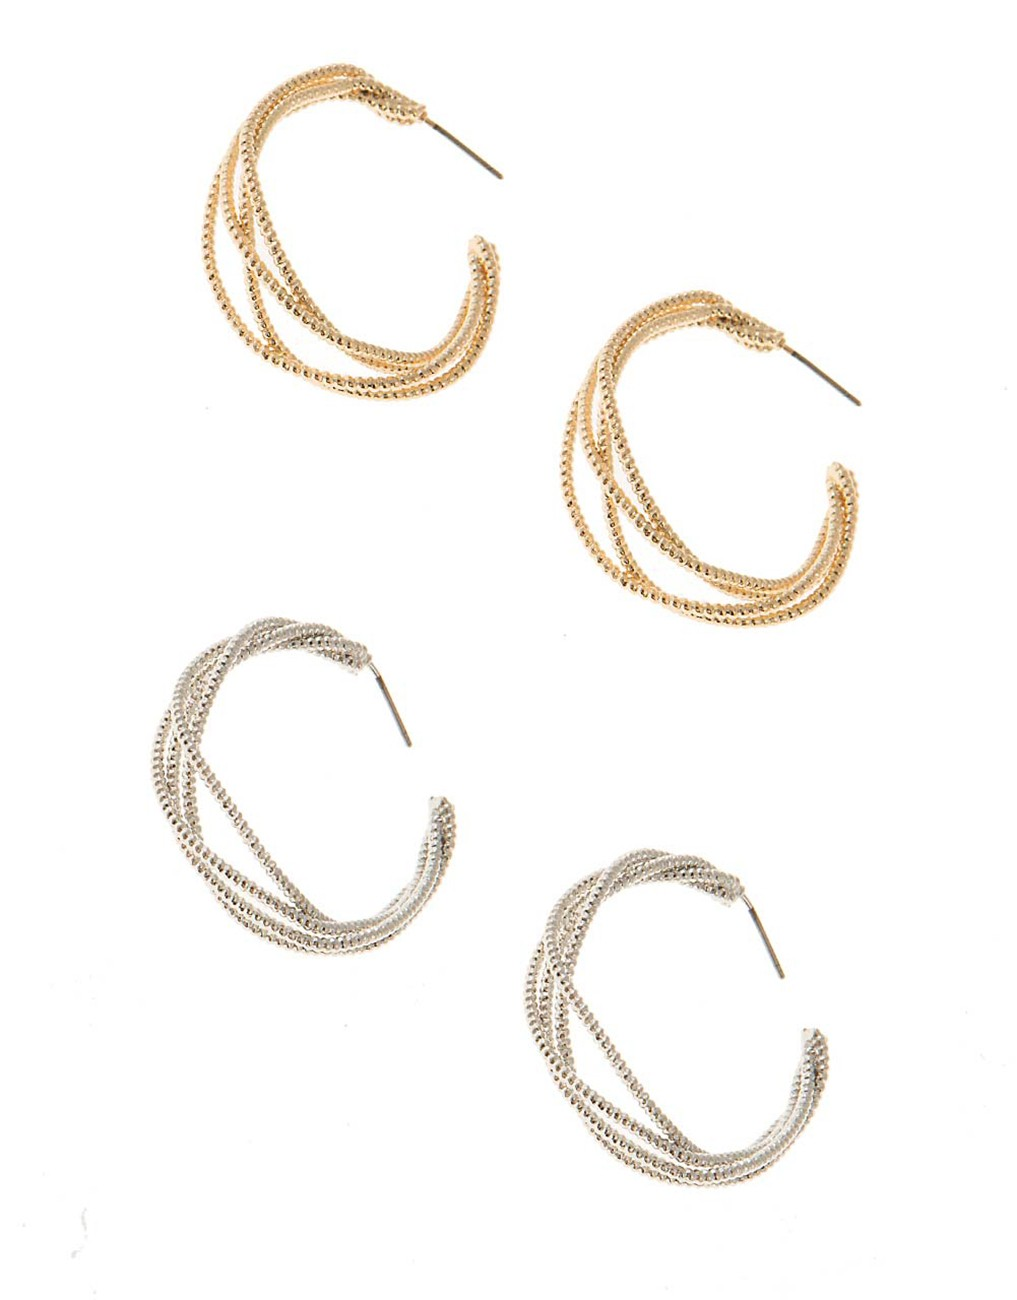 Set of ear hoops with woven look